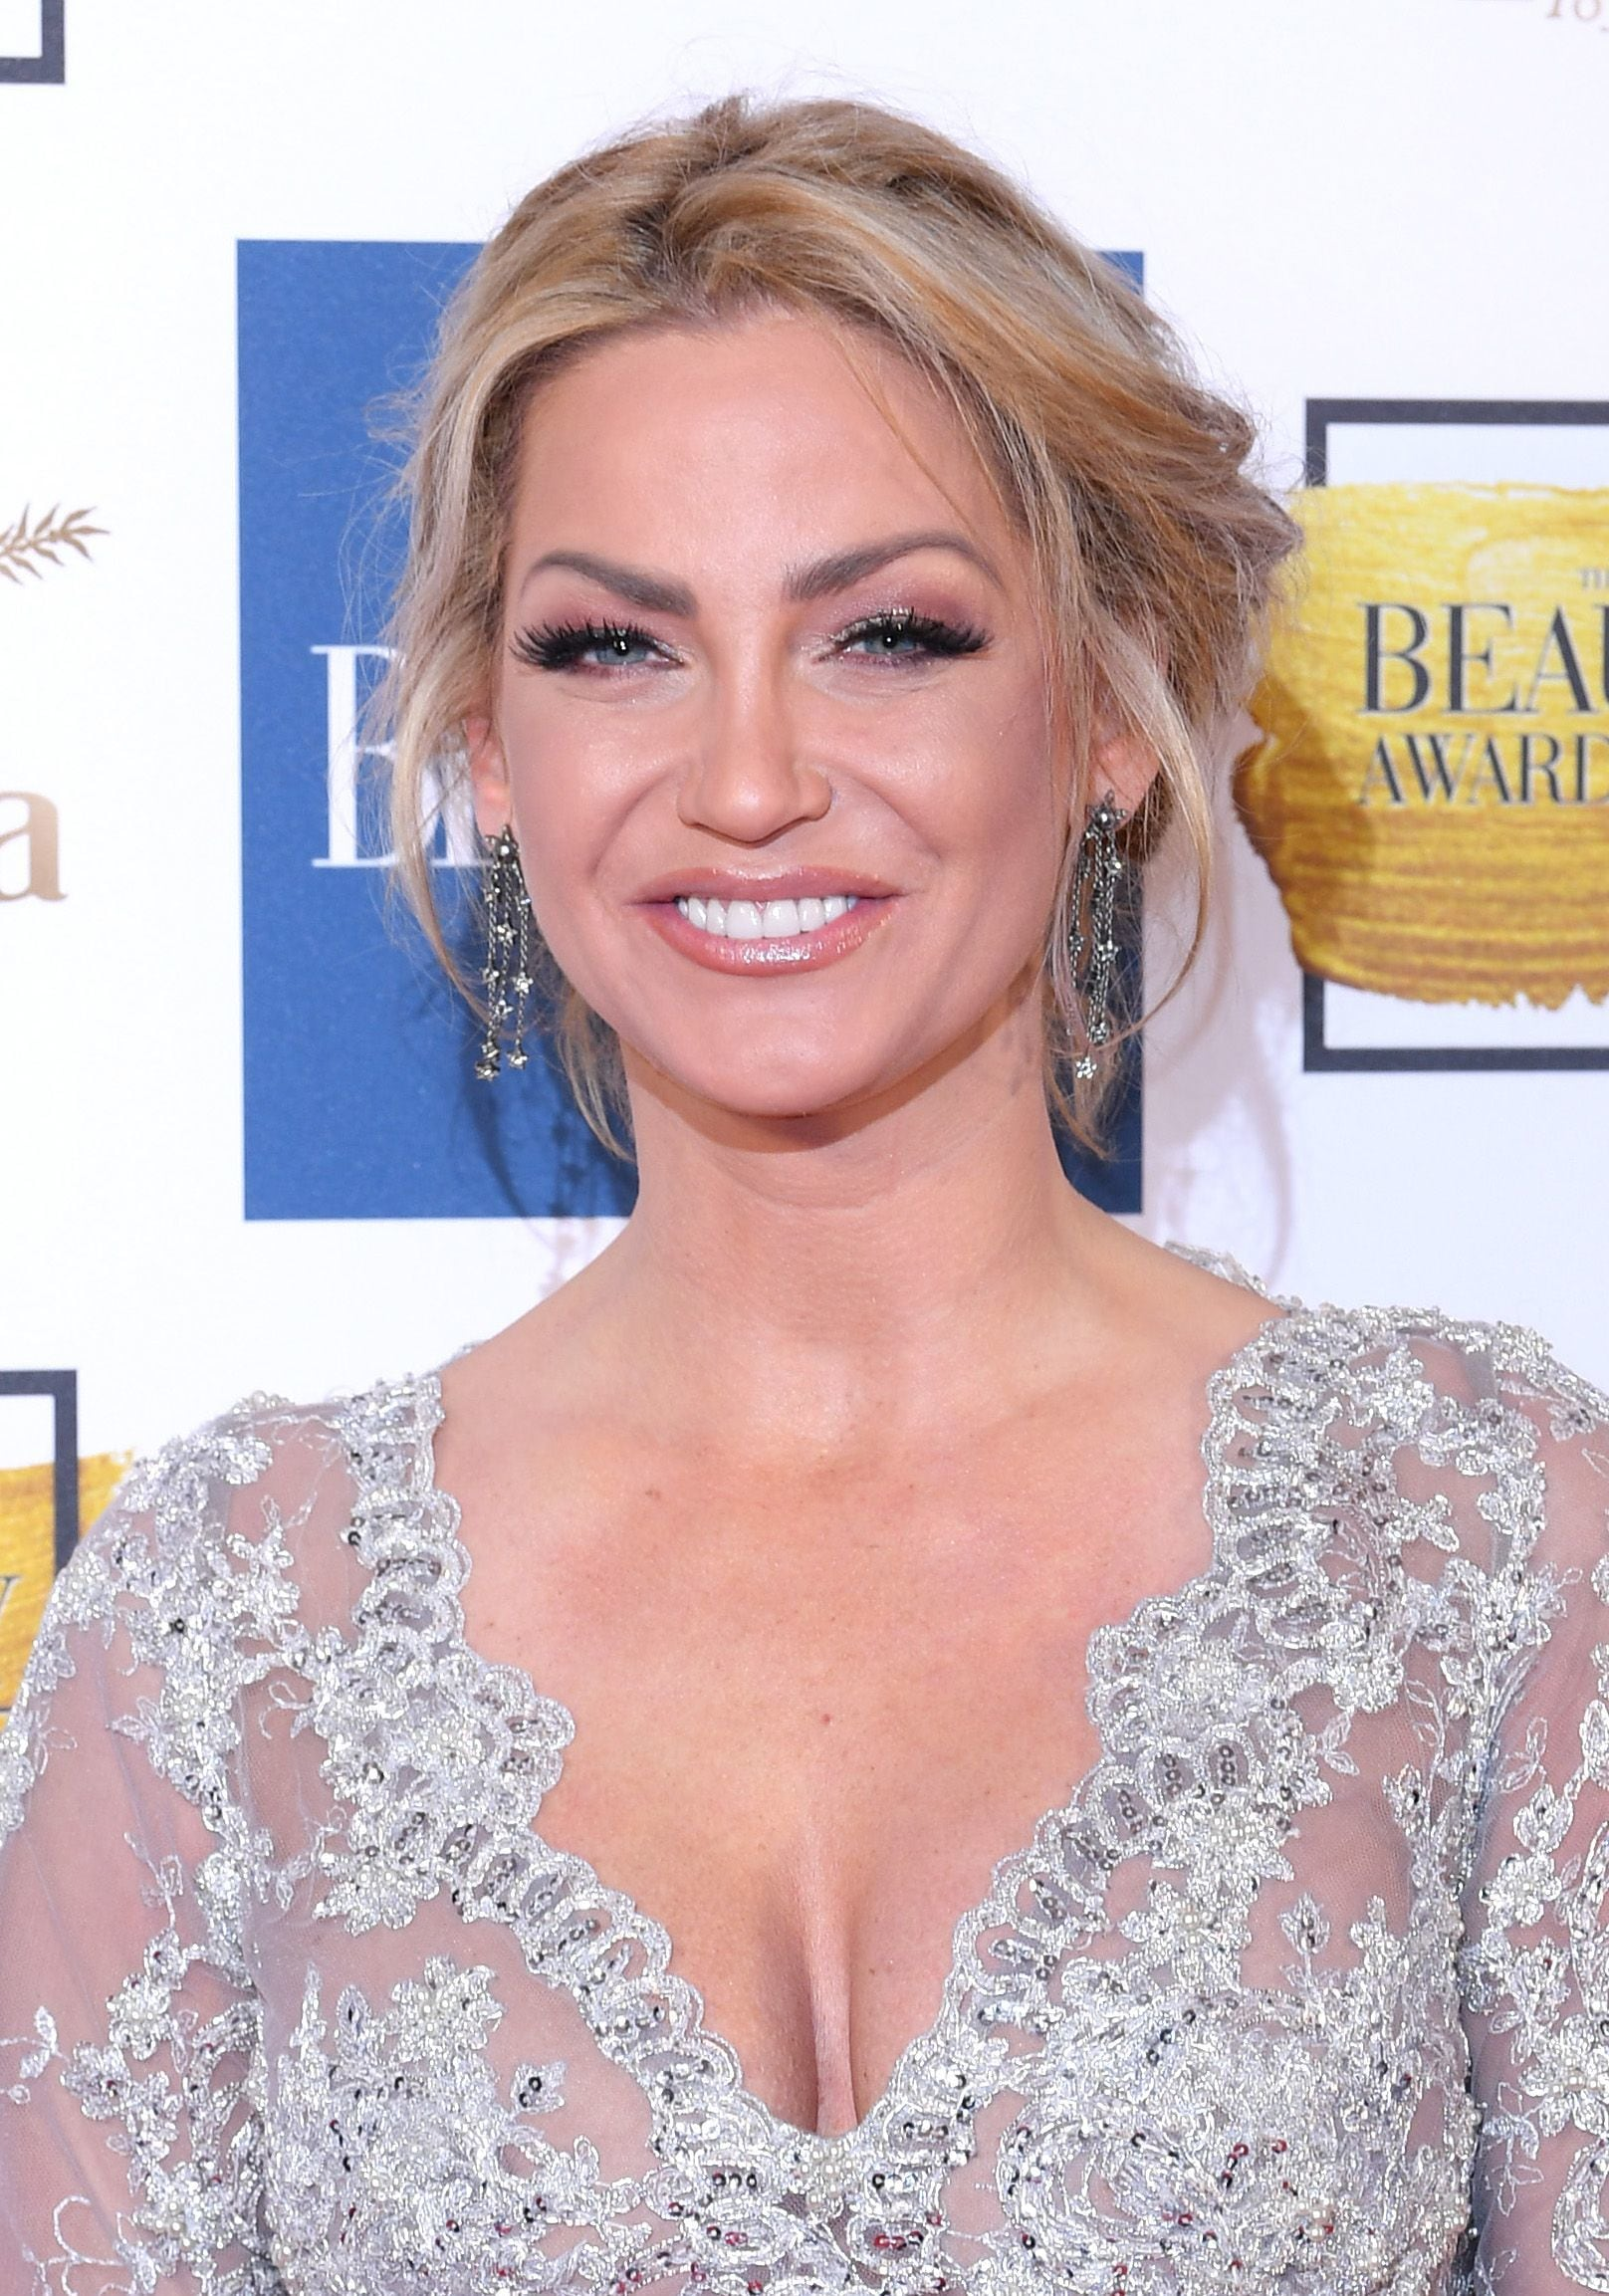 close up shot of sarah harding with romantic updo hairstyke, wearing silver dress at the ok magazine beauty awards